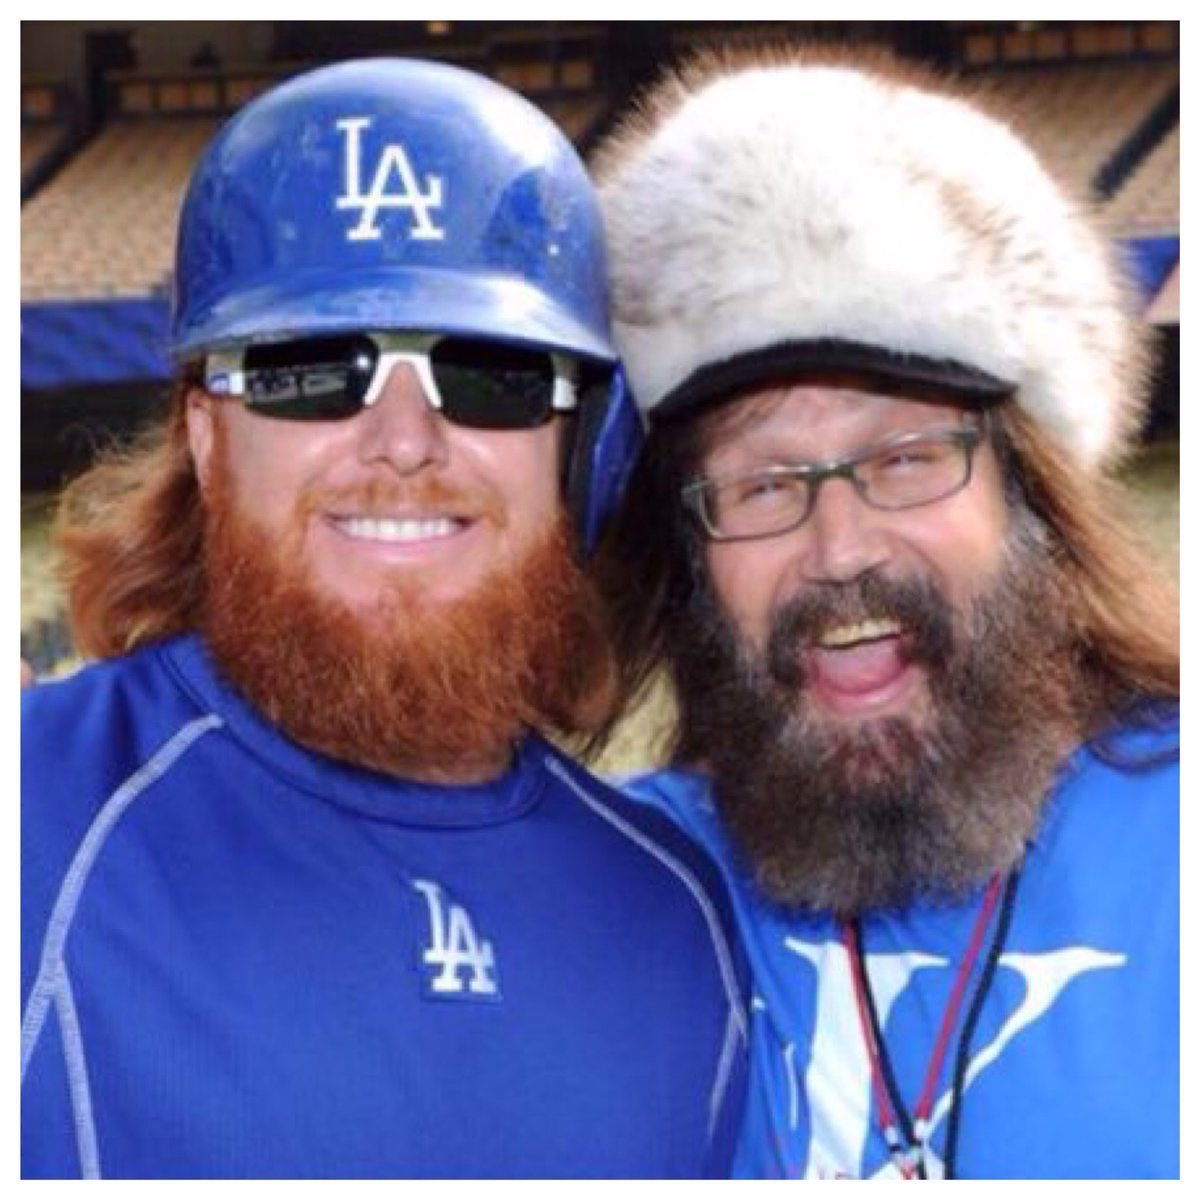 DODGERS FANS! FEELIN YOU! THE WAY OF THE WARRIOR! THE WAY OF THE AZUL! BUEHLER ELECTRIC! TURNER RED SAMURAI SET THE TONE! BARNES BRILLIANT! 28 SAMURAI CHOP WOOD CARRY WATER... LIVE THROUGH DEATH SHOW NO FEAR...  VIVA LOS DODGERS! BRING IT HOME JT!   @redturn2 #Dodgers @Dodgers https://t.co/dkS6BNnrnr